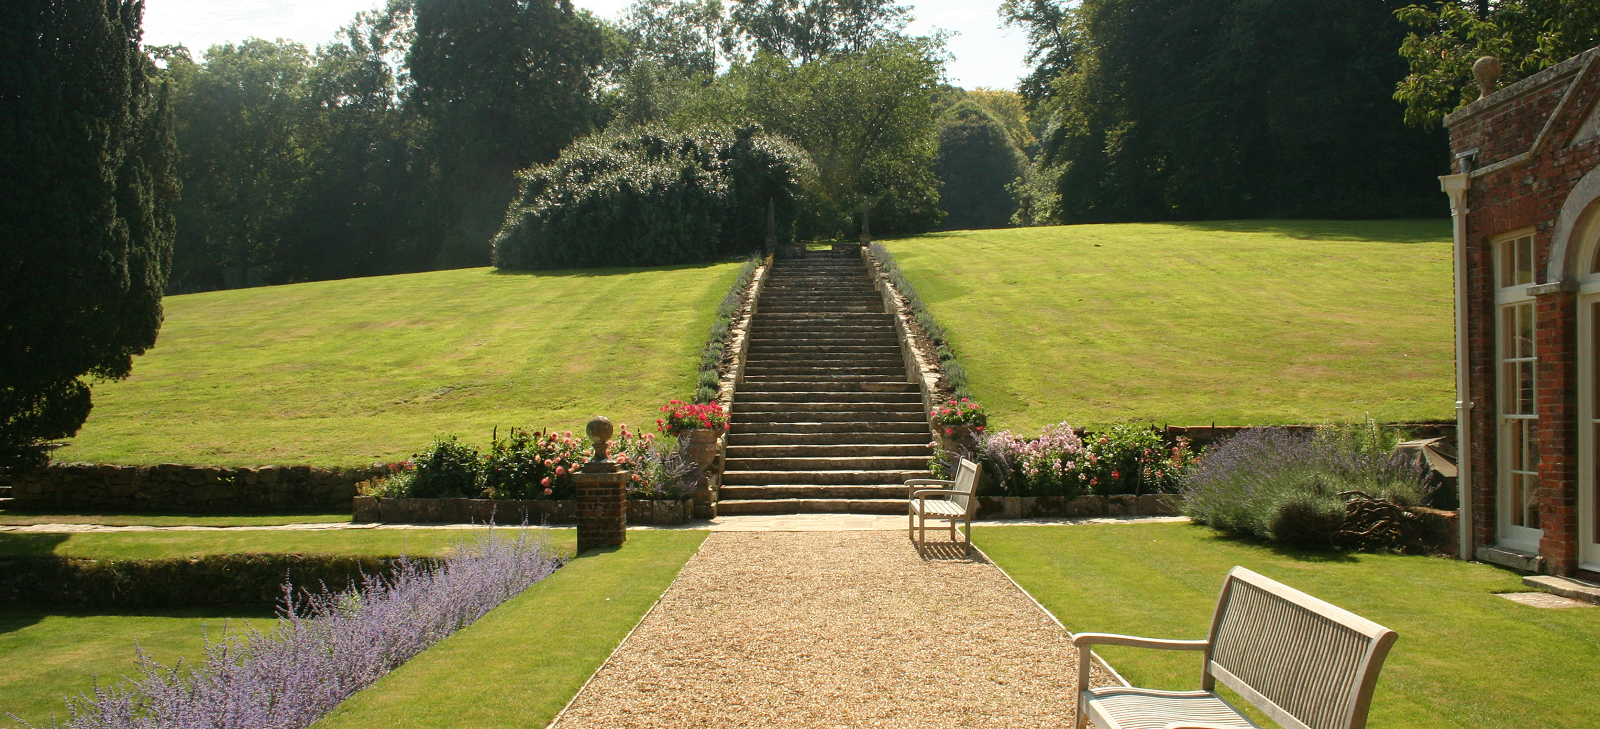 Welcome to Nunwell House and Gardens, Brading, Isle of Wight